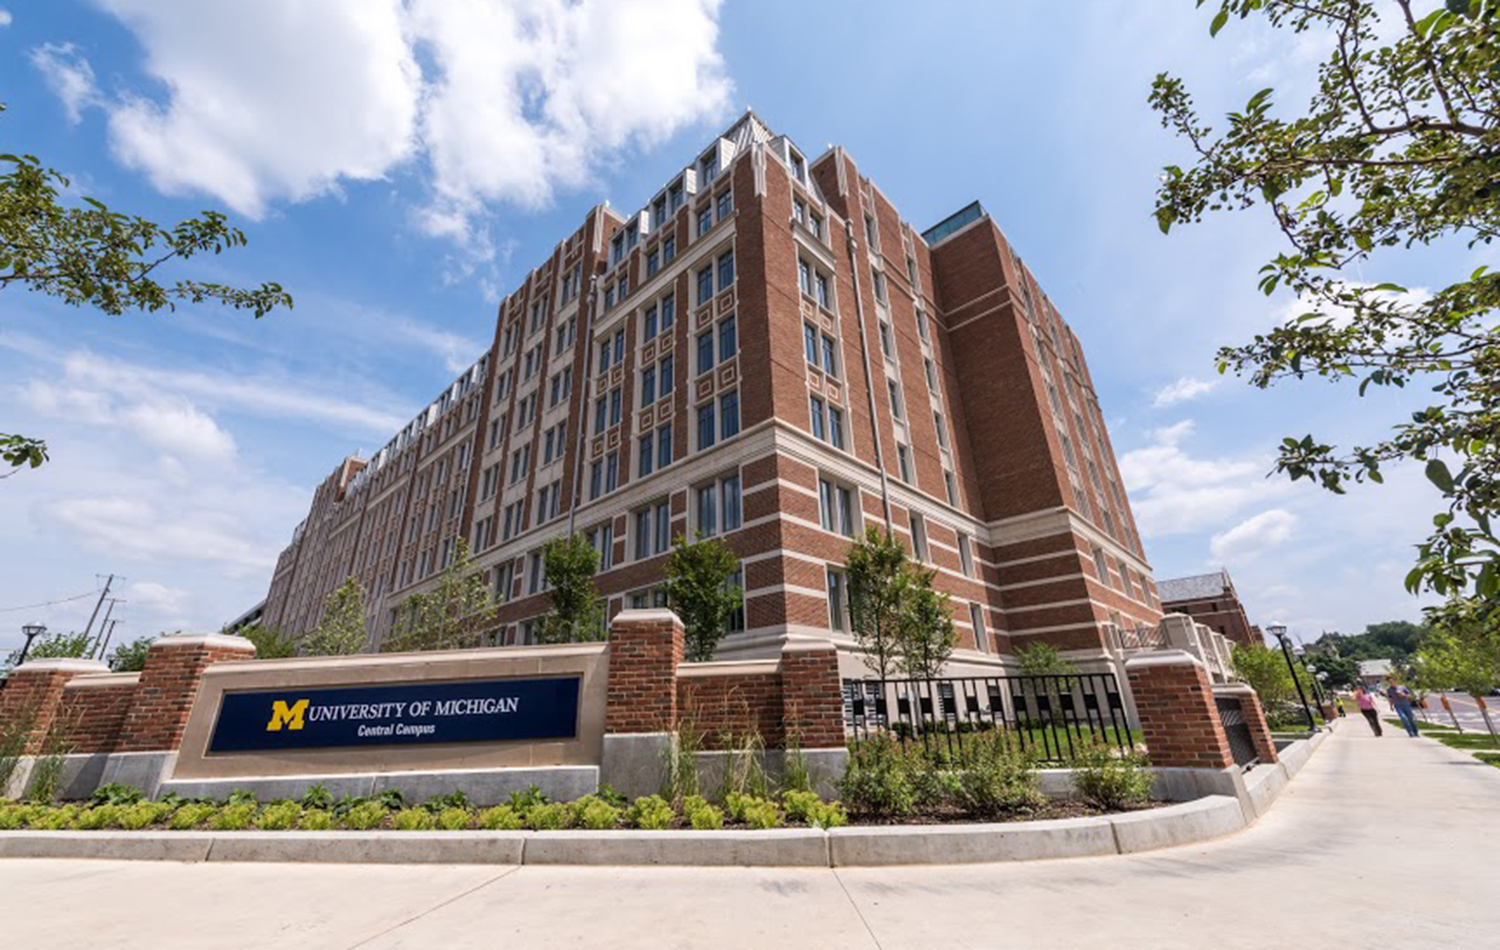 15_0723_munger-graduate-residences-opens-at-university-of-michigan-outside-orig.jpg